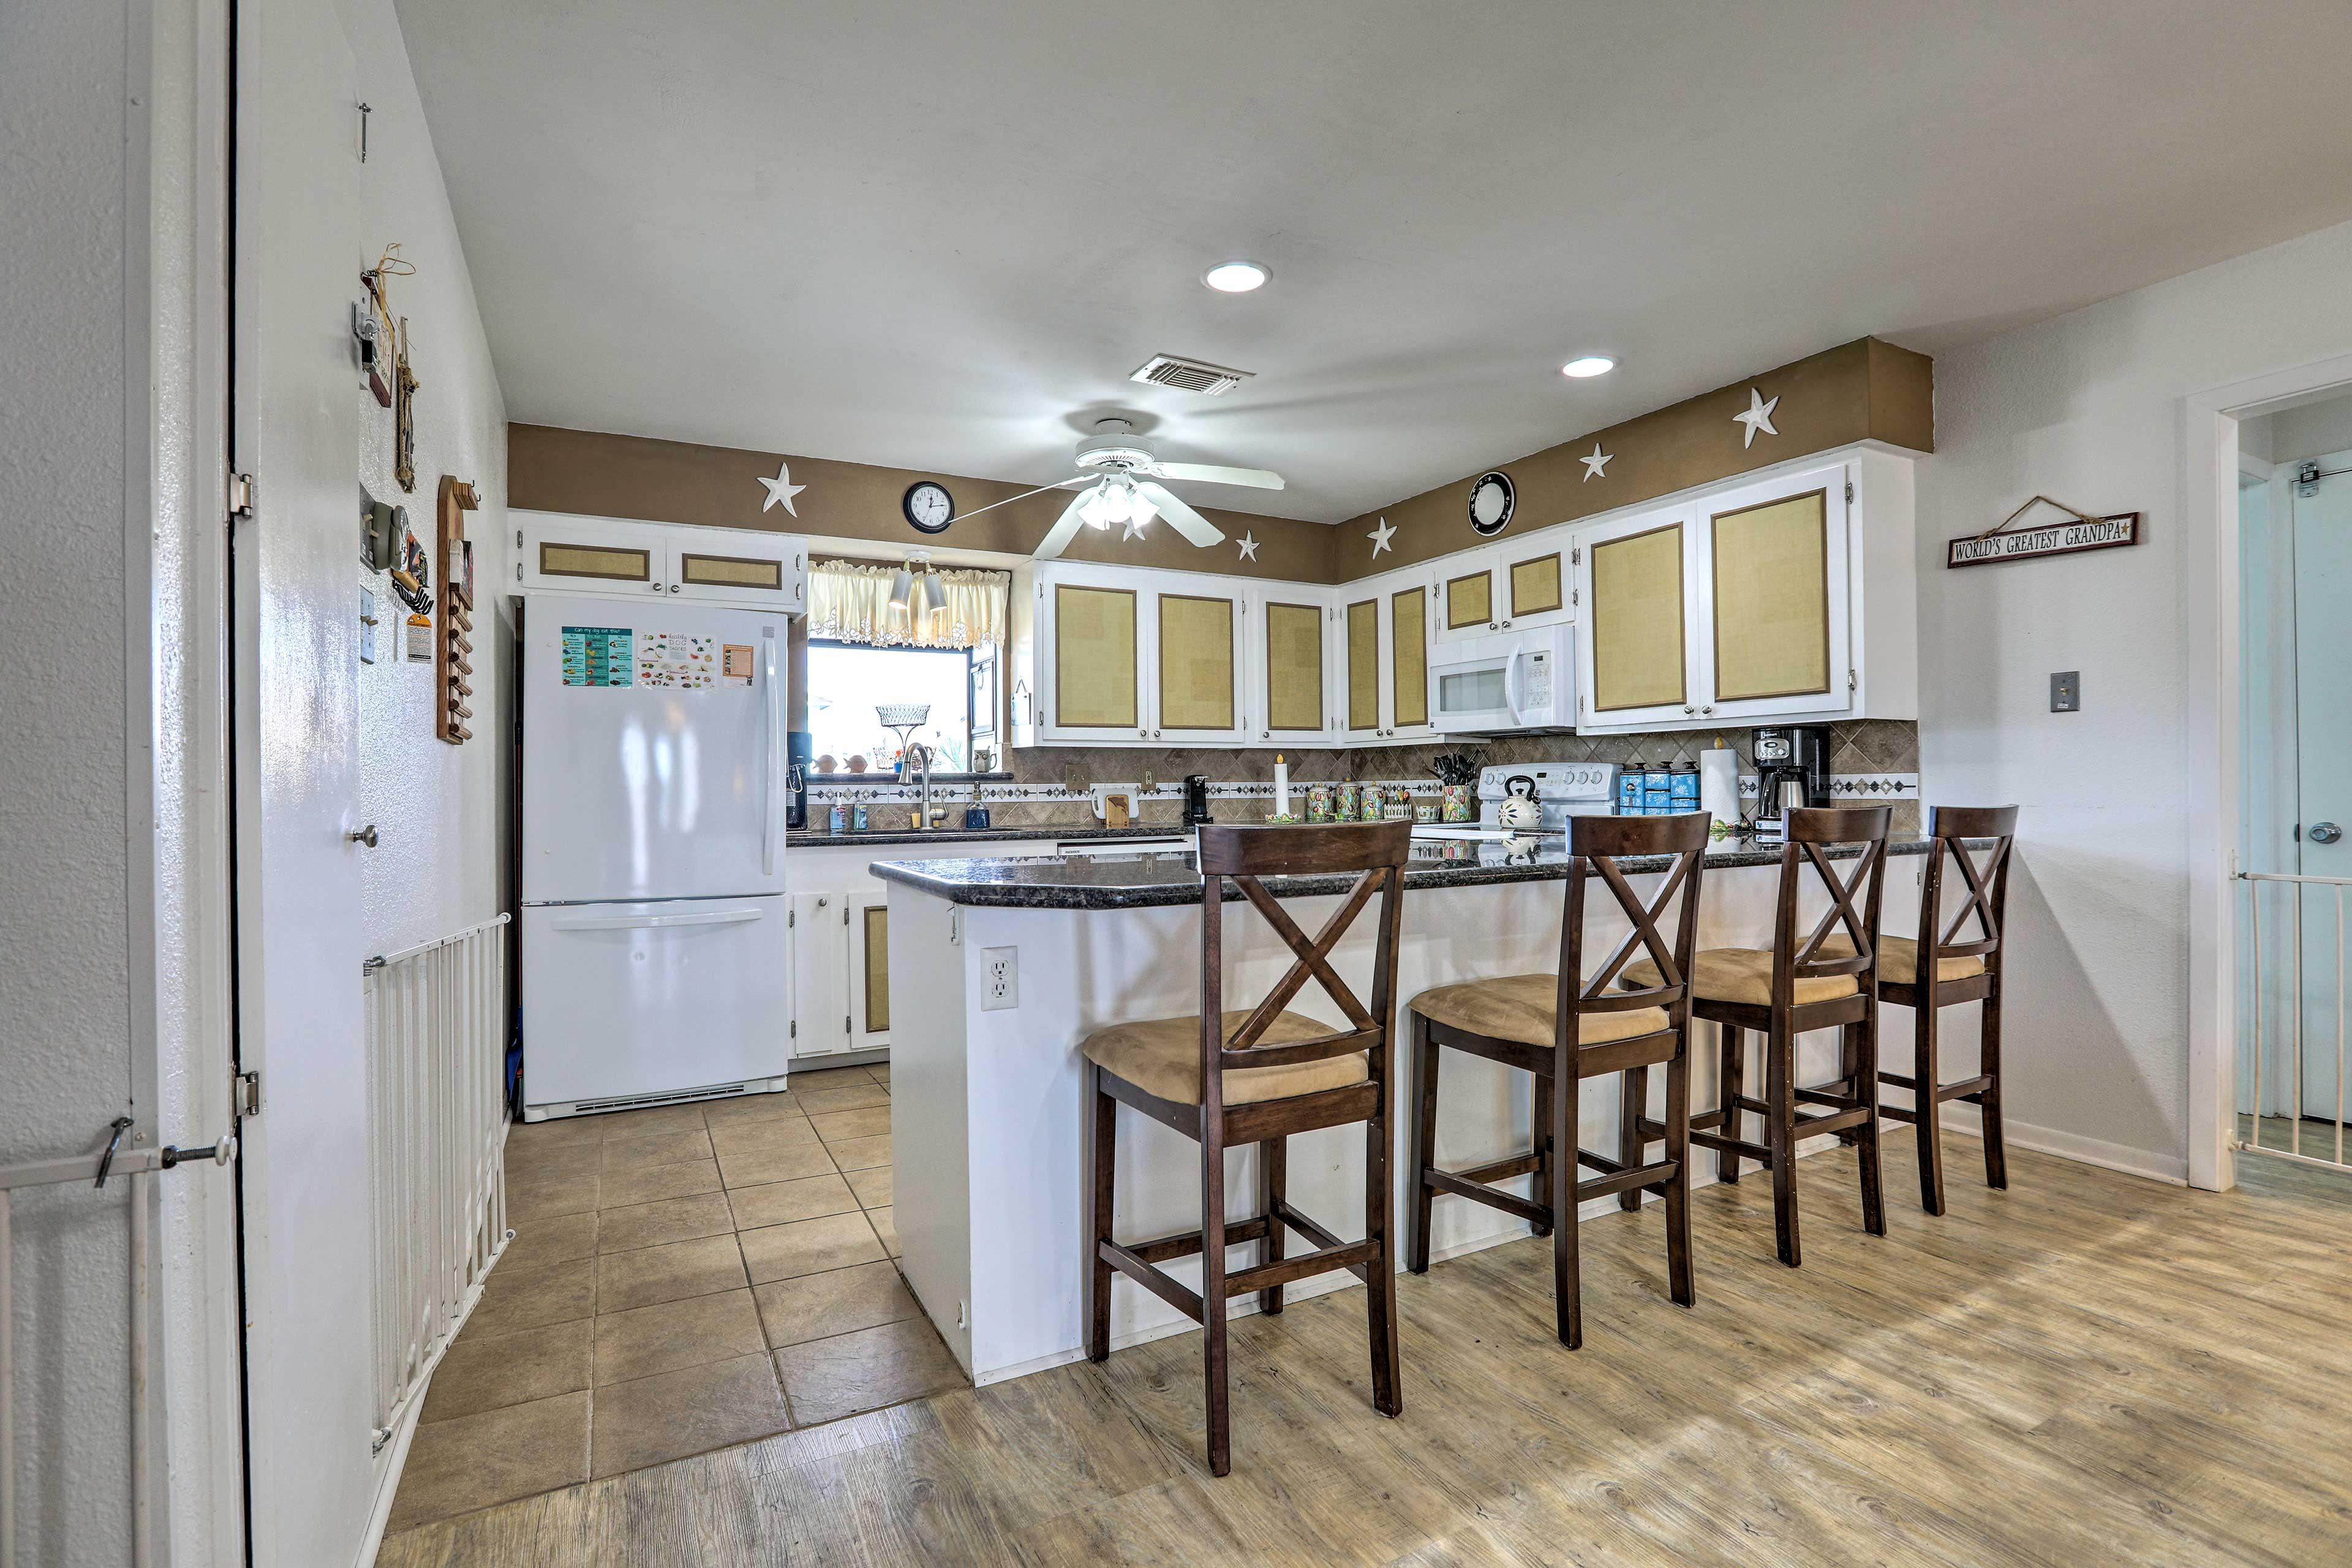 Munch on your favorite snacks in the fully equipped kitchen!